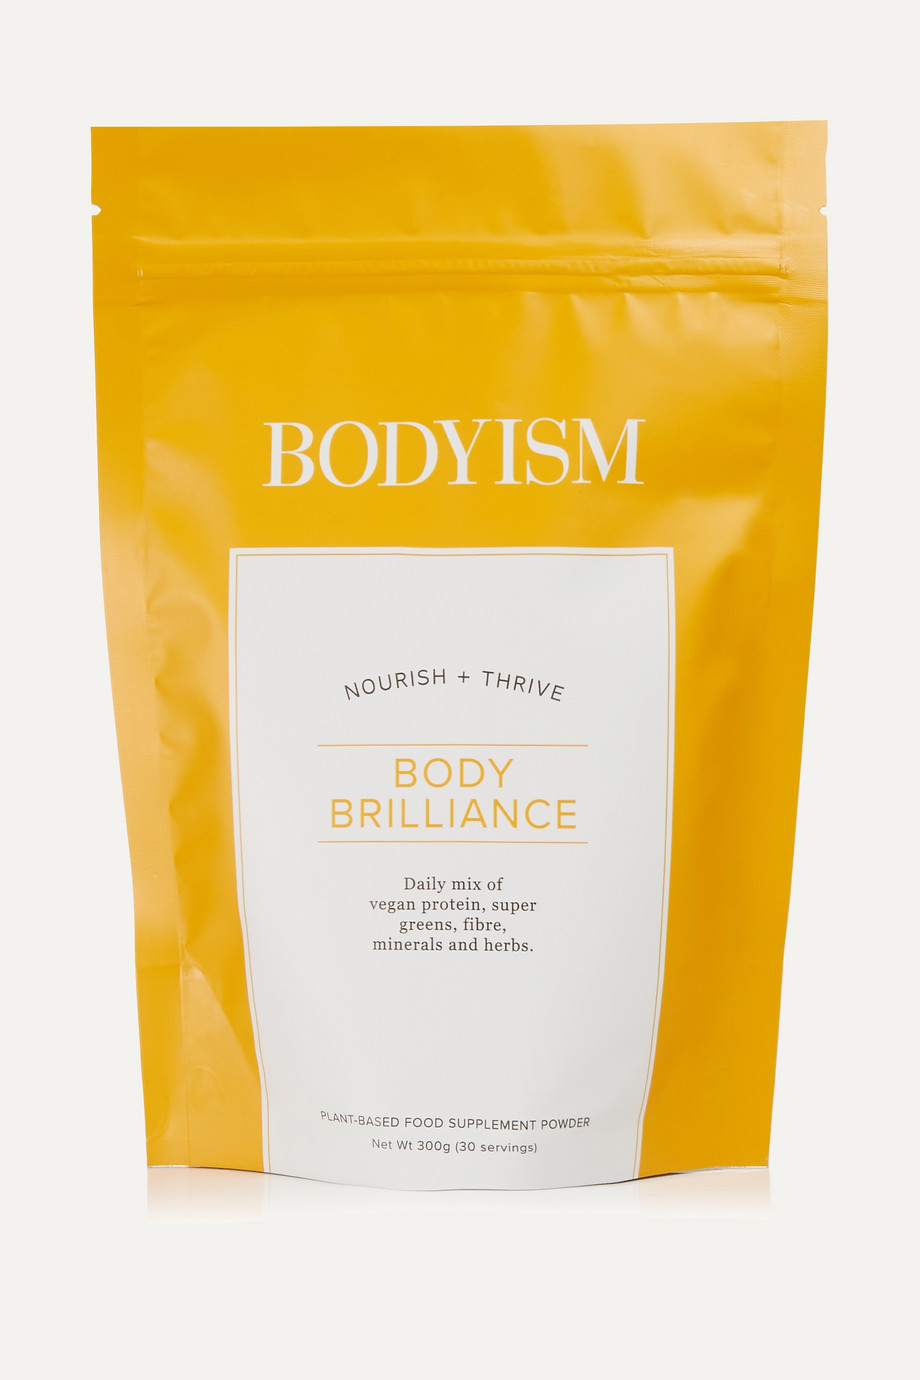 Body Brilliance Shake, 300g, by Bodyism's Clean and Lean